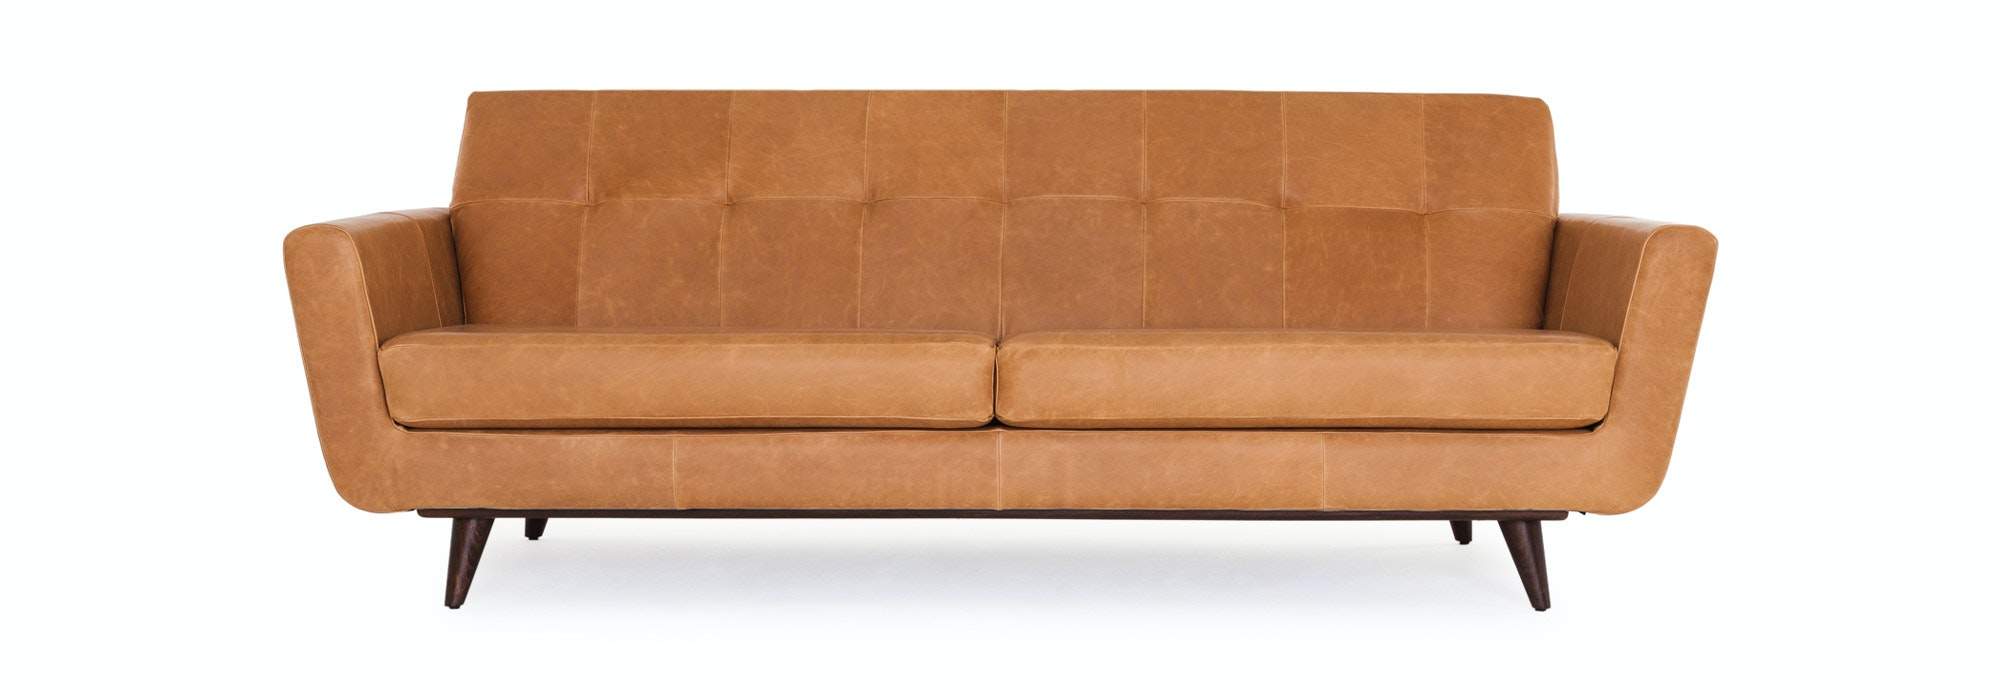 Hughes Leather Sofa Joybird